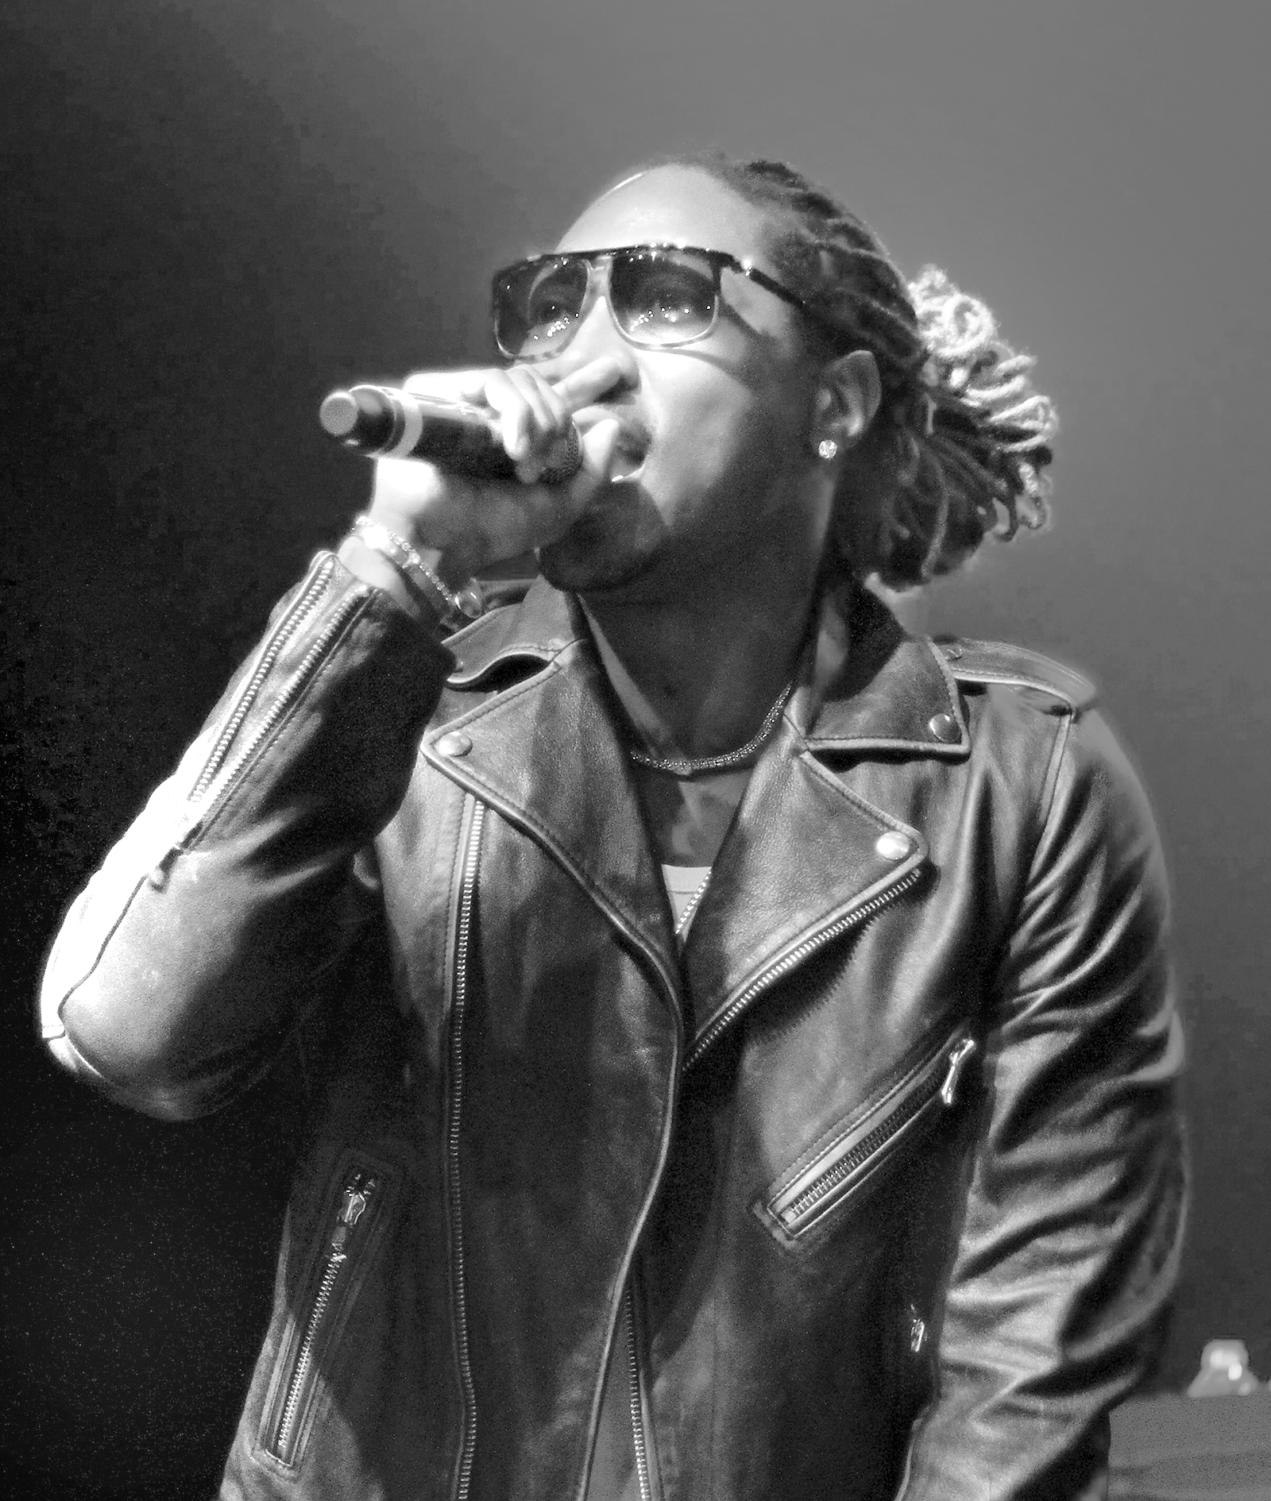 """Future, one of the most well-known """"mumble rappers,"""" pictured in concert in 2014. """"Mumble rap"""" is a misleading label for a new type of Hip-Hop.`"""